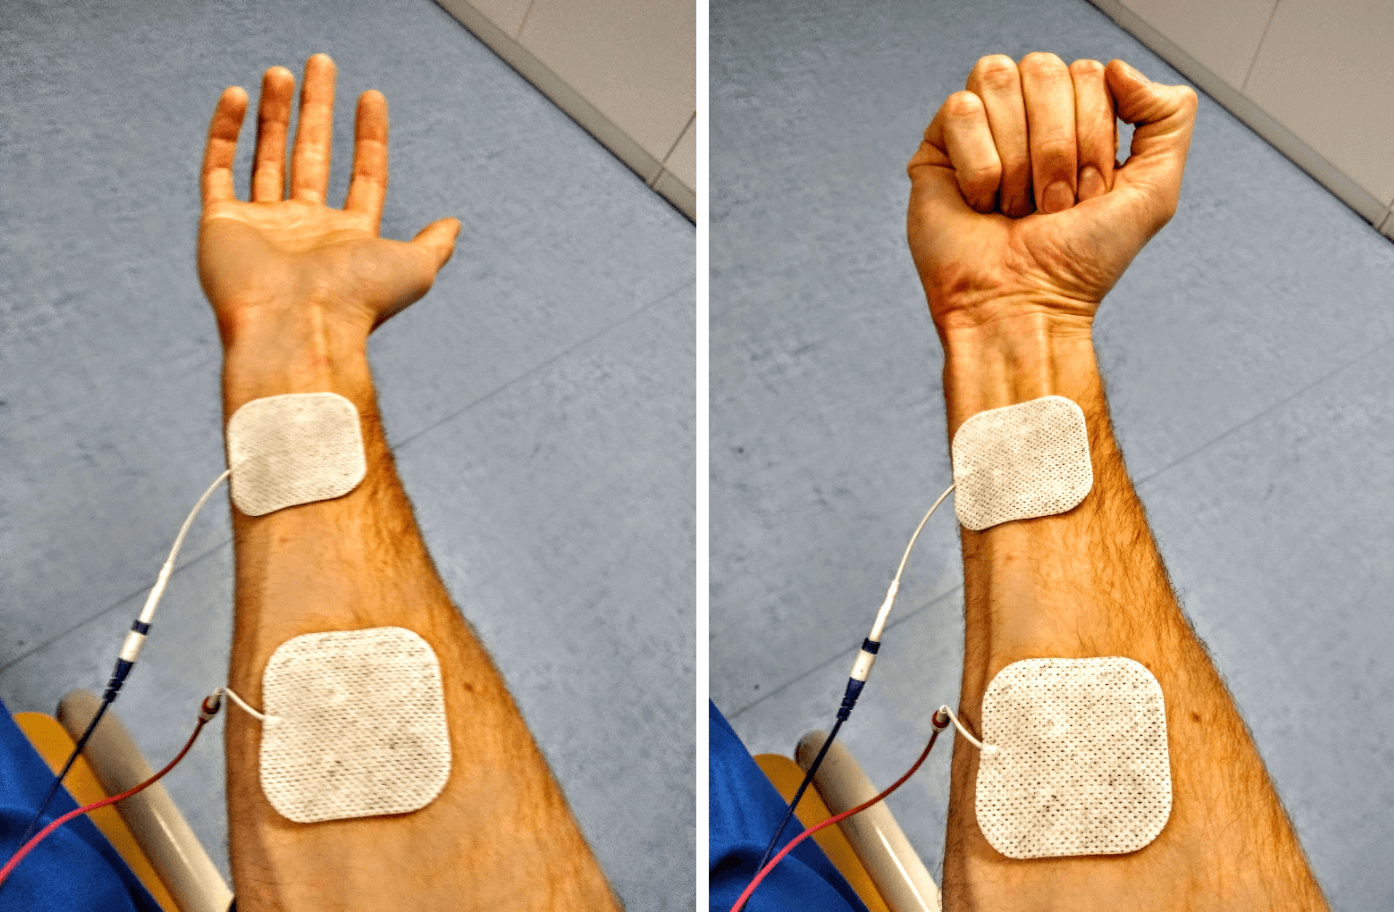 electrical stimulation open close hand